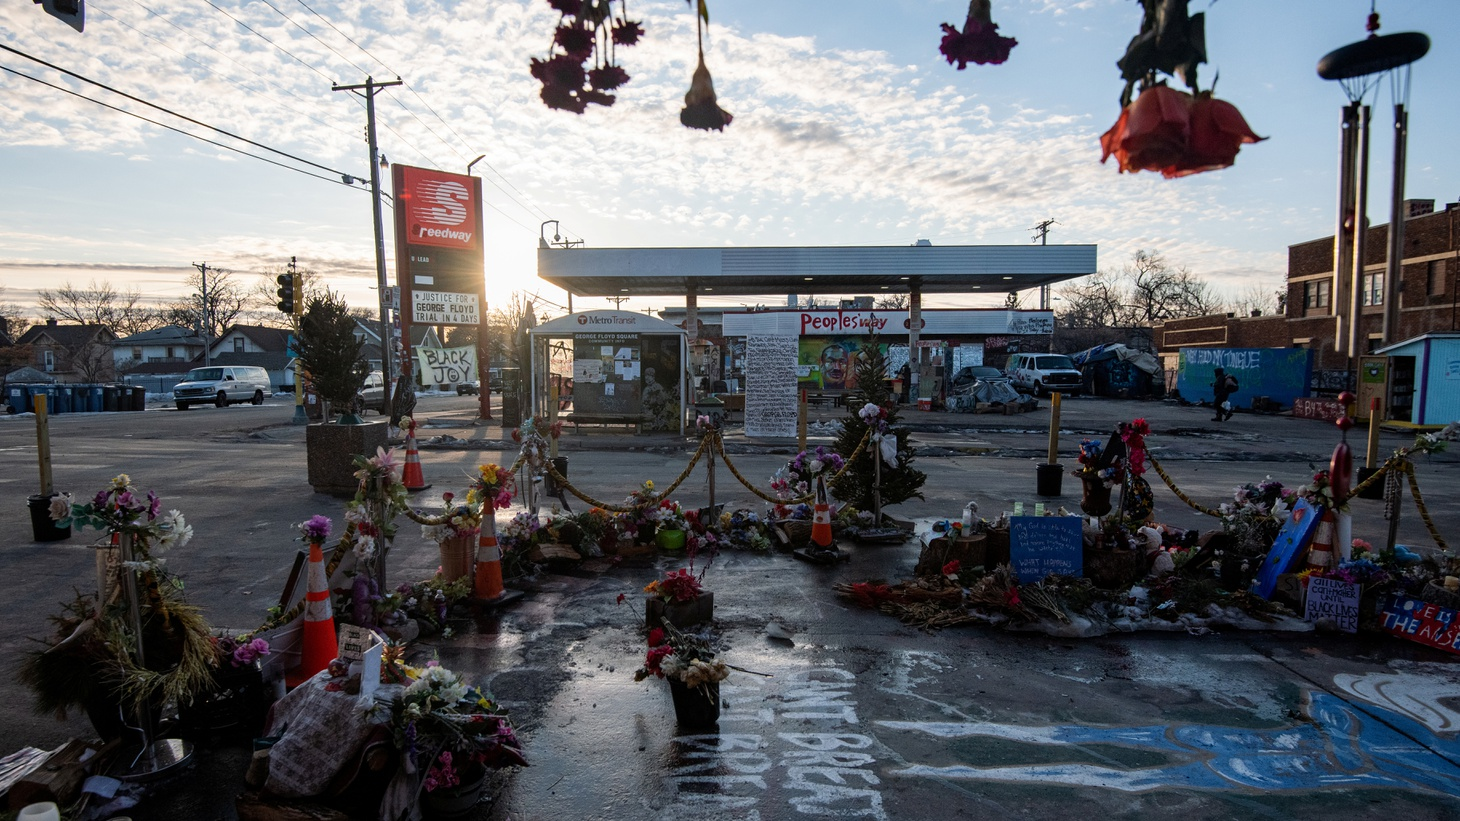 """The """"People's Way"""" at George Floyd Square, the site where George Floyd was killed, is seen in the days leading up to the trial of former police Derek Chauvin, who is facing murder charges in his death, in Minneapolis, Minnesota, U.S., March 4, 2021. Picture taken March 4, 2021."""